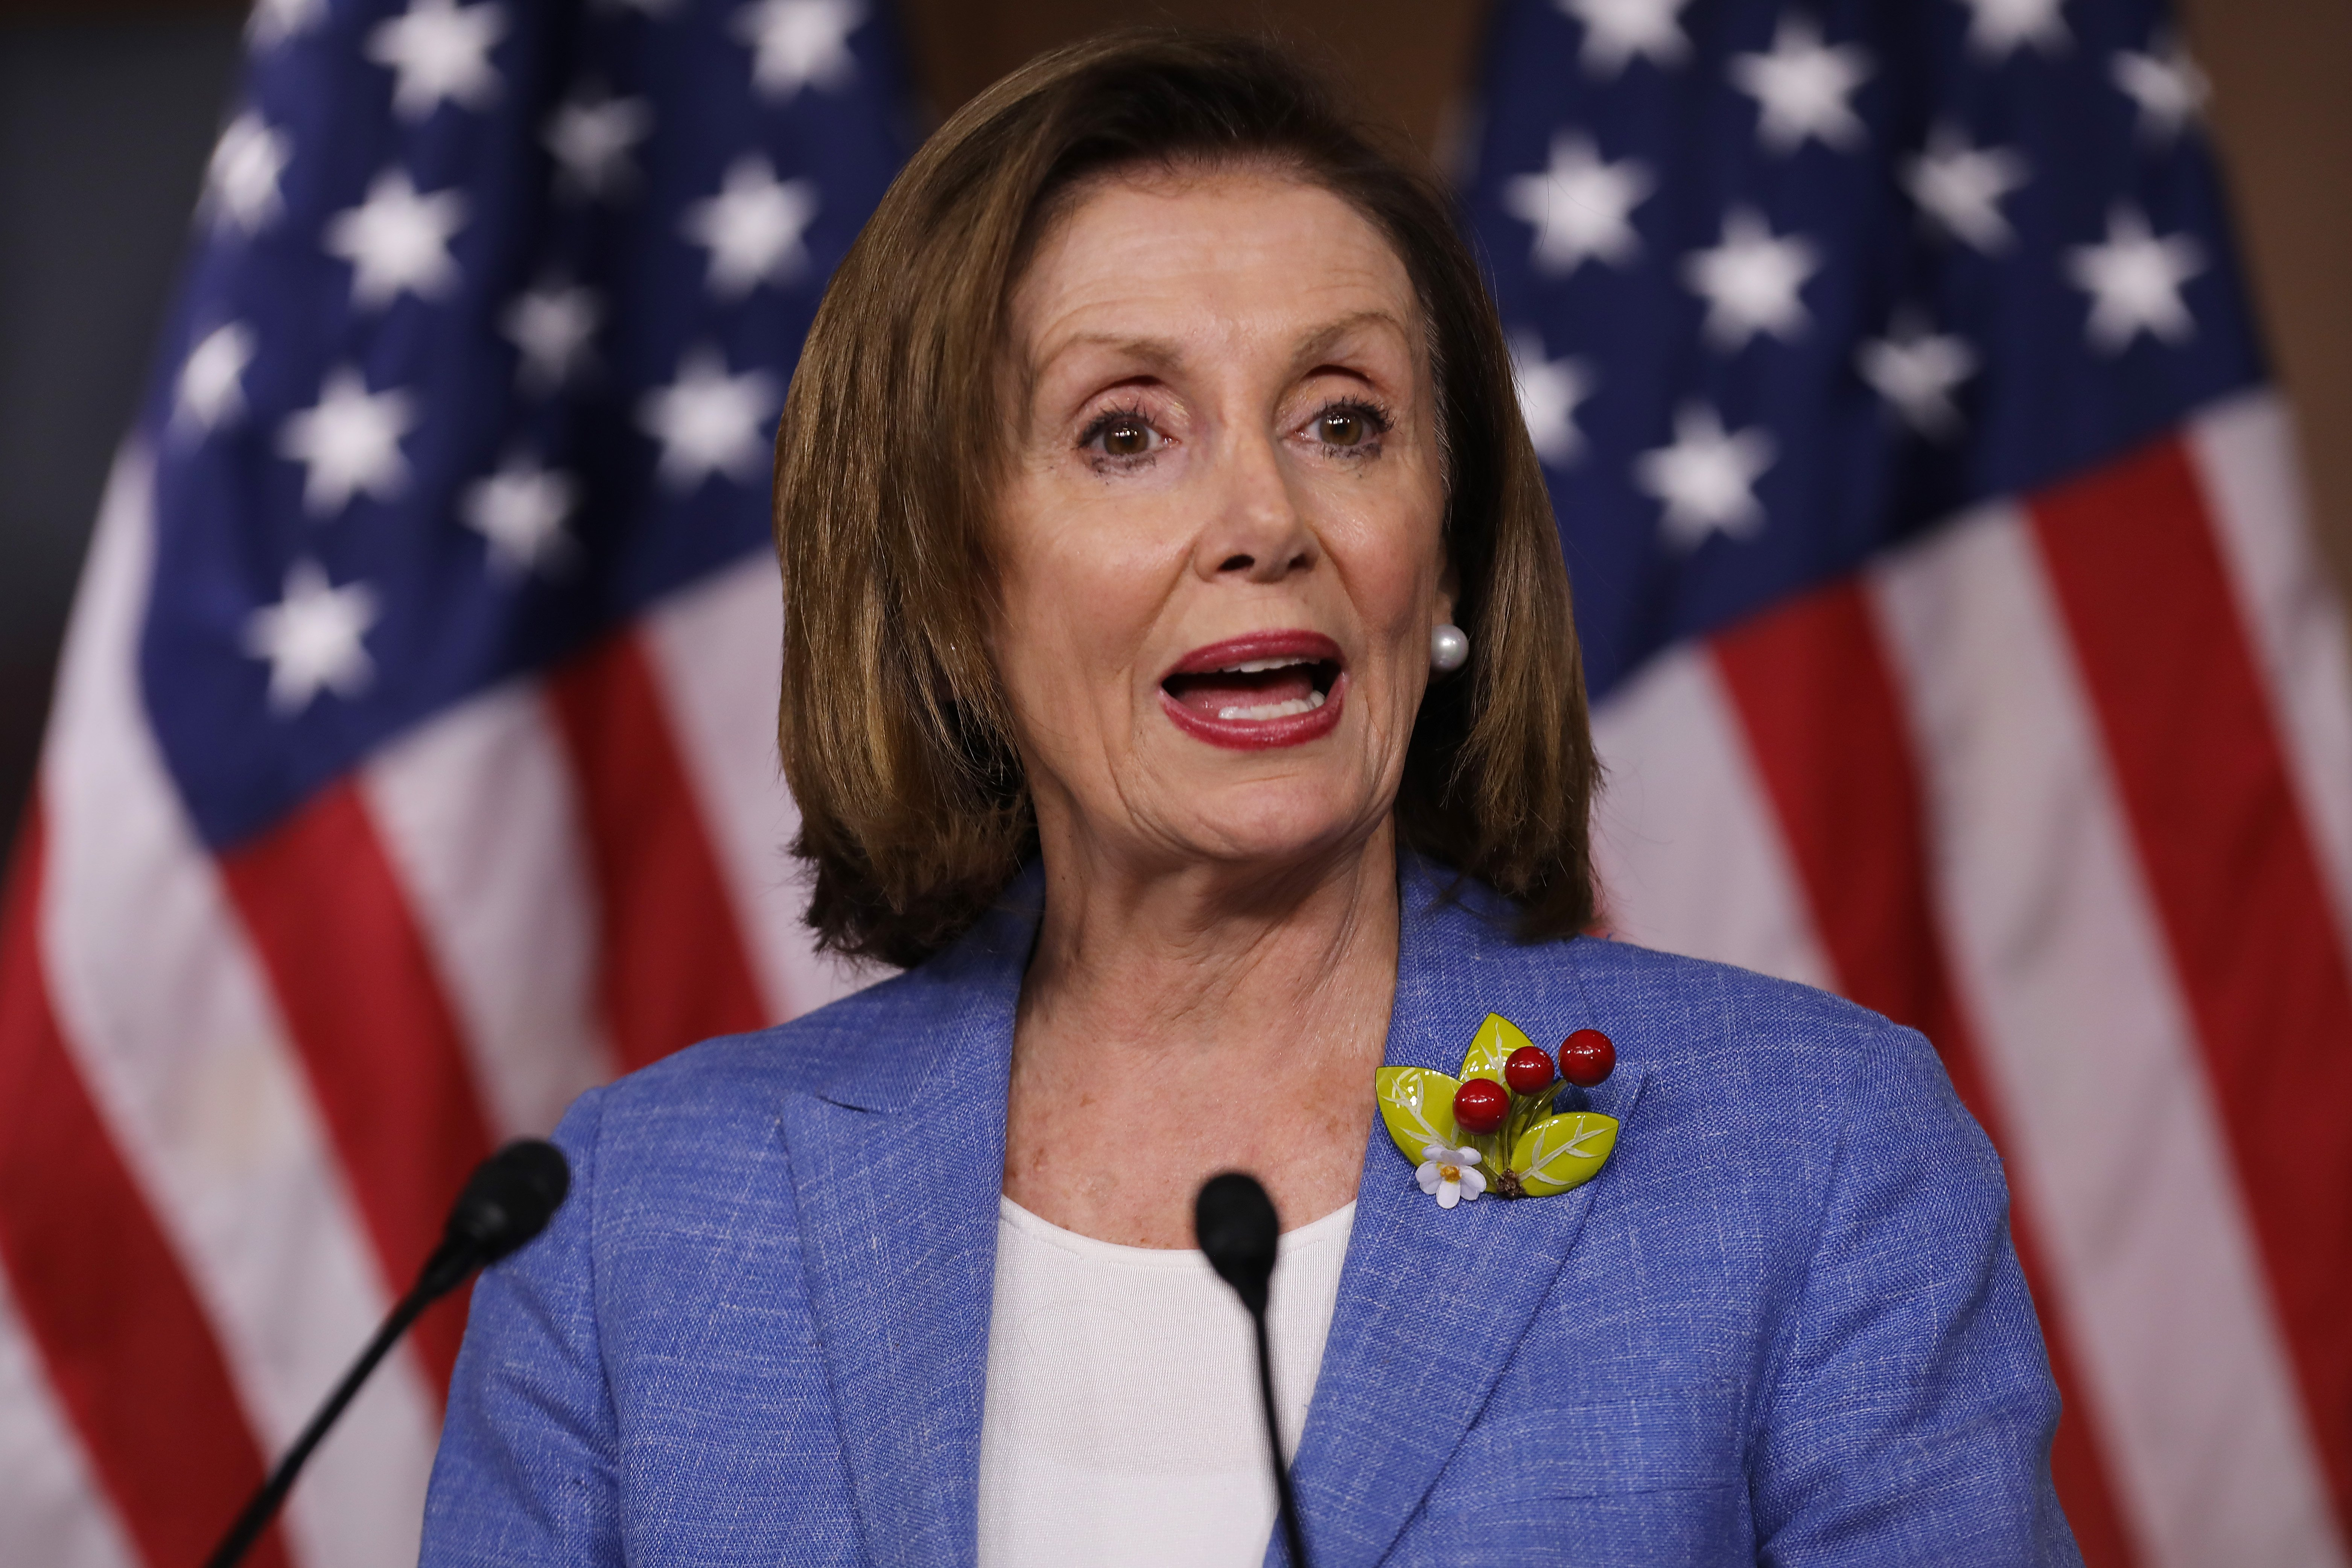 Nancy Pelosi holds her weekly press conference at the U.S. Capitol Visitors Center. | Source: Getty Images